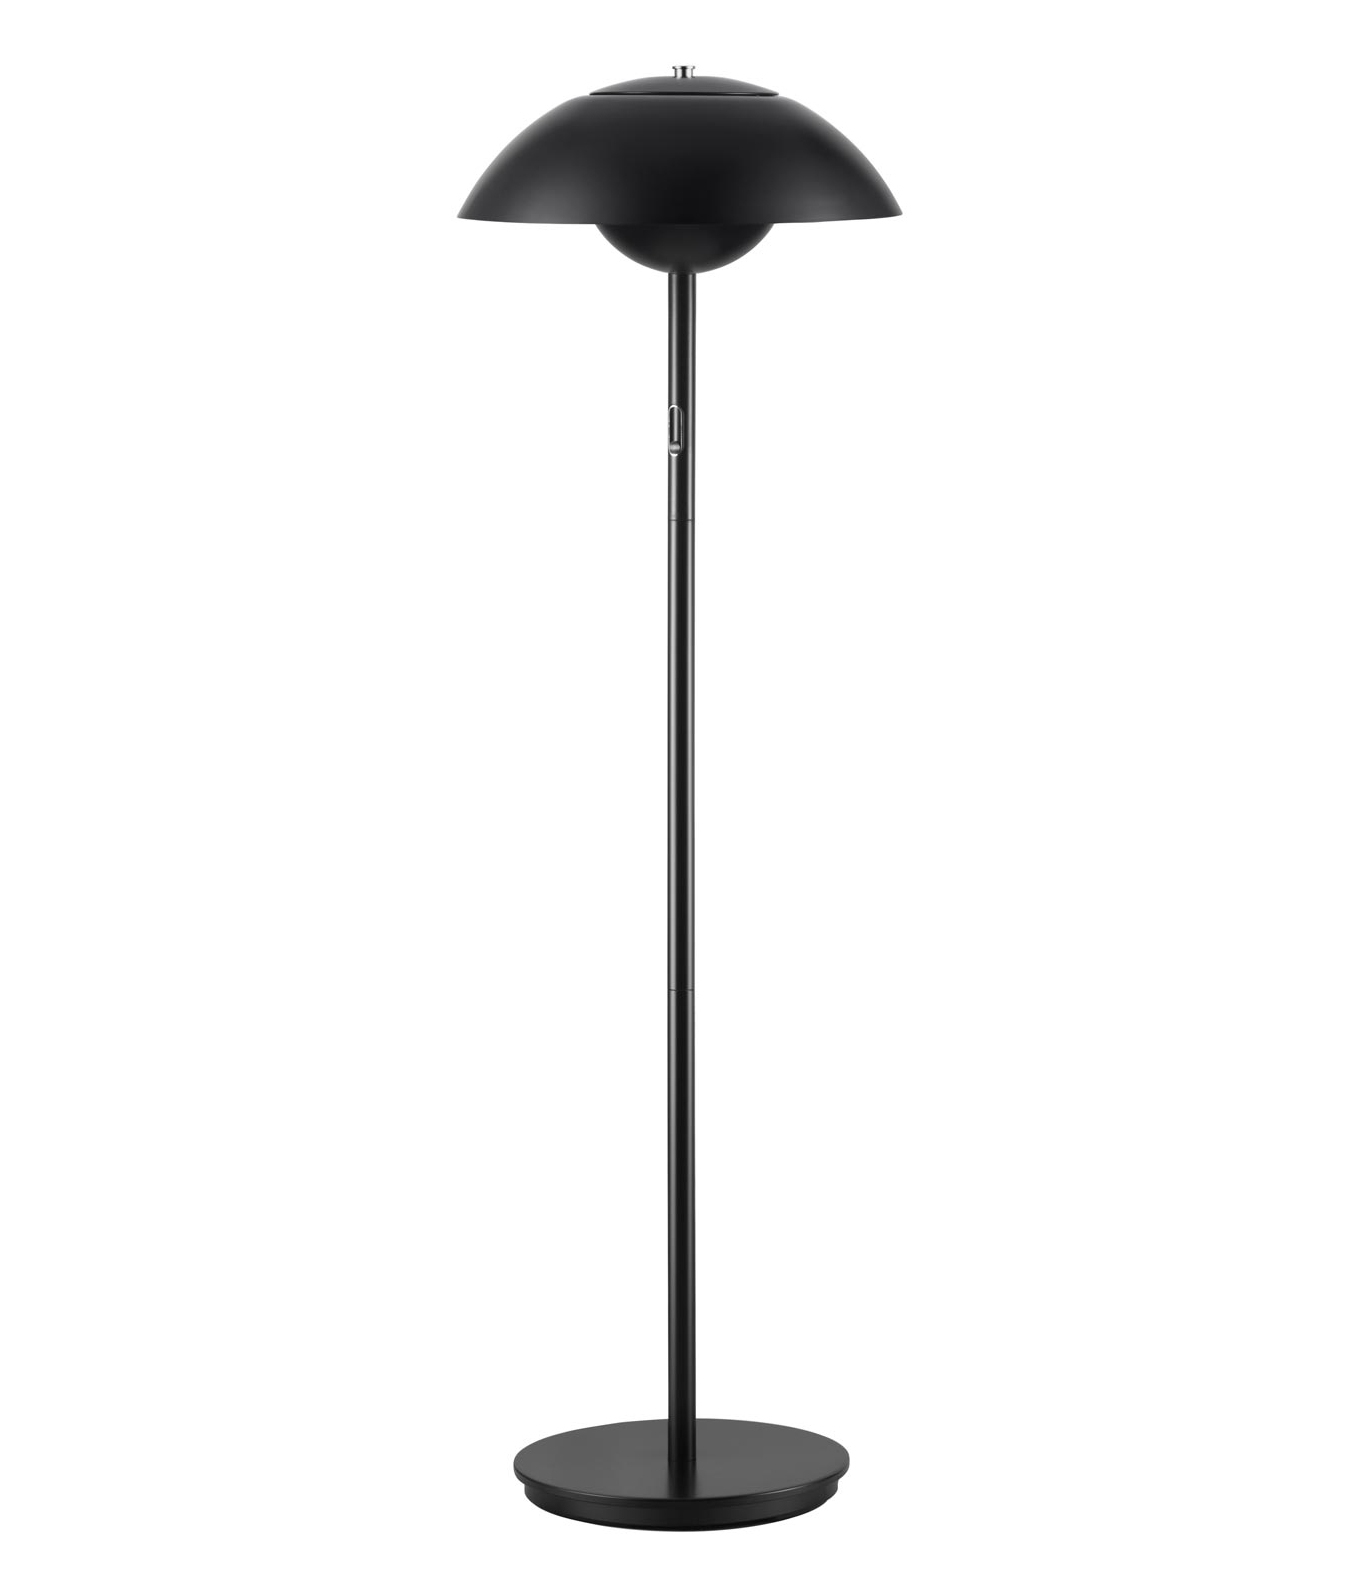 Modern Dimmable LED Floor Lamp available in either black ...